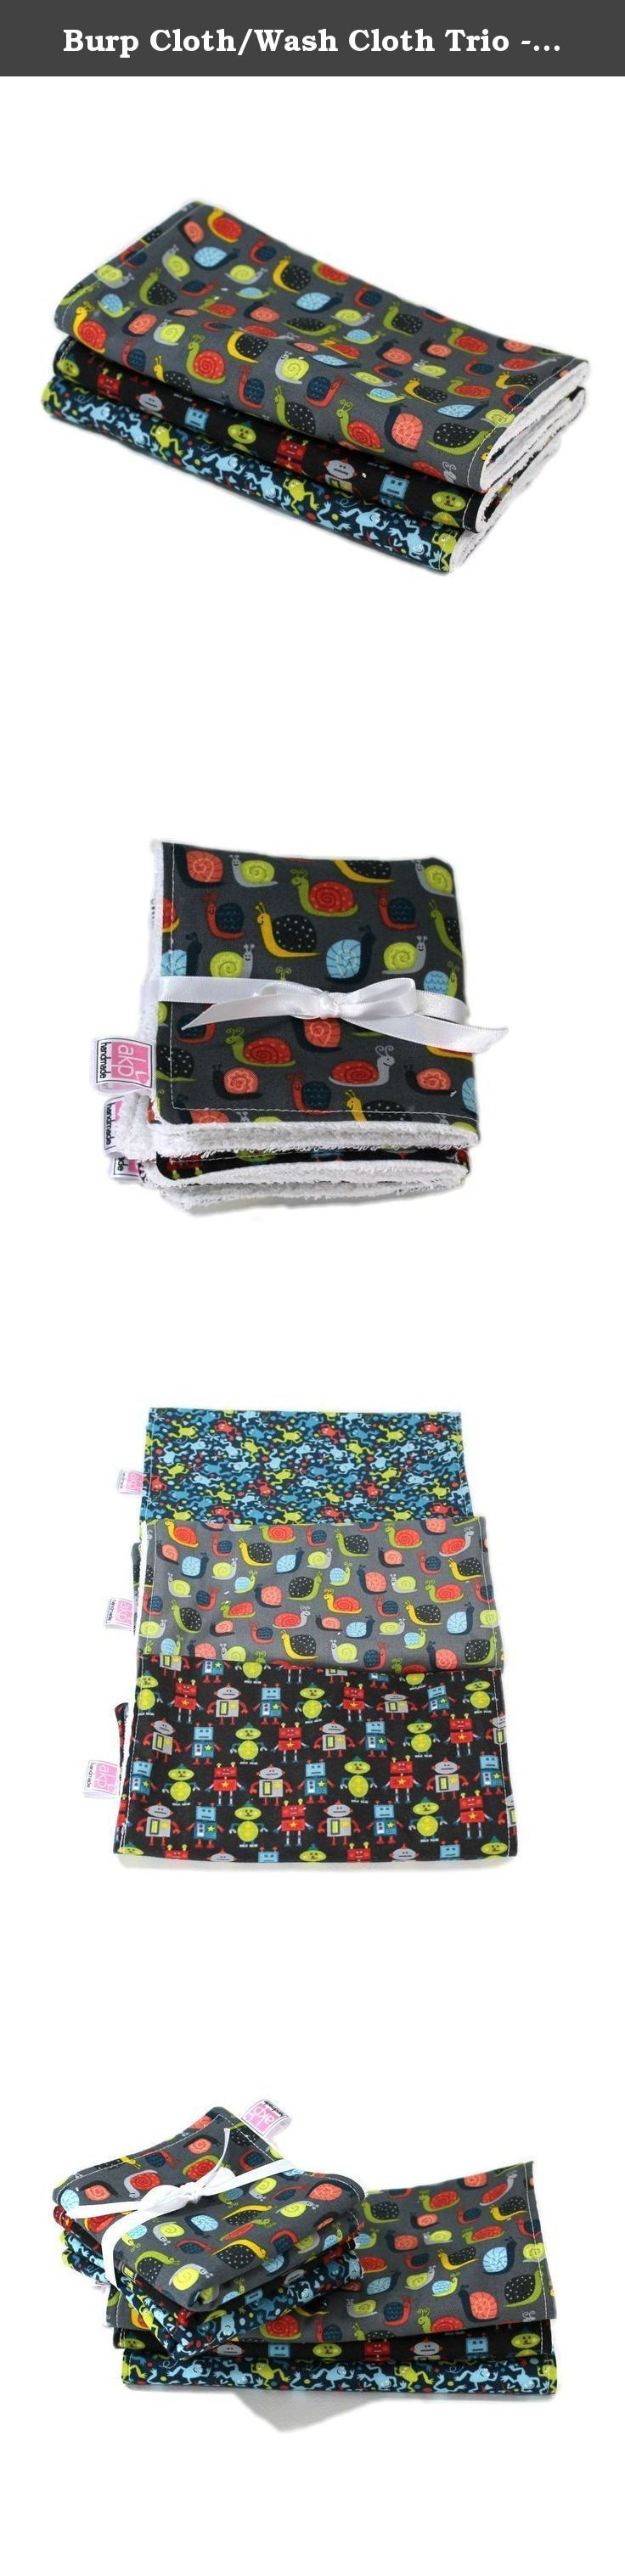 Burp Cloth/Wash Cloth Trio - Snails and More. These burp and wash cloth sets are the perfect gift for any new mom and her sweet baby! Made of 100% cotton designer fabric with 100% cotton terry cloth on the back, they are soft and super absorbent and are top-stitched for extra durability. Wash them over and over. Each burp cloth measures approximately 18 x 9 inches. The perfect size to throw over your shoulder, lay under the baby, or even use as a changing pad. Each wash cloth measures 9 x…